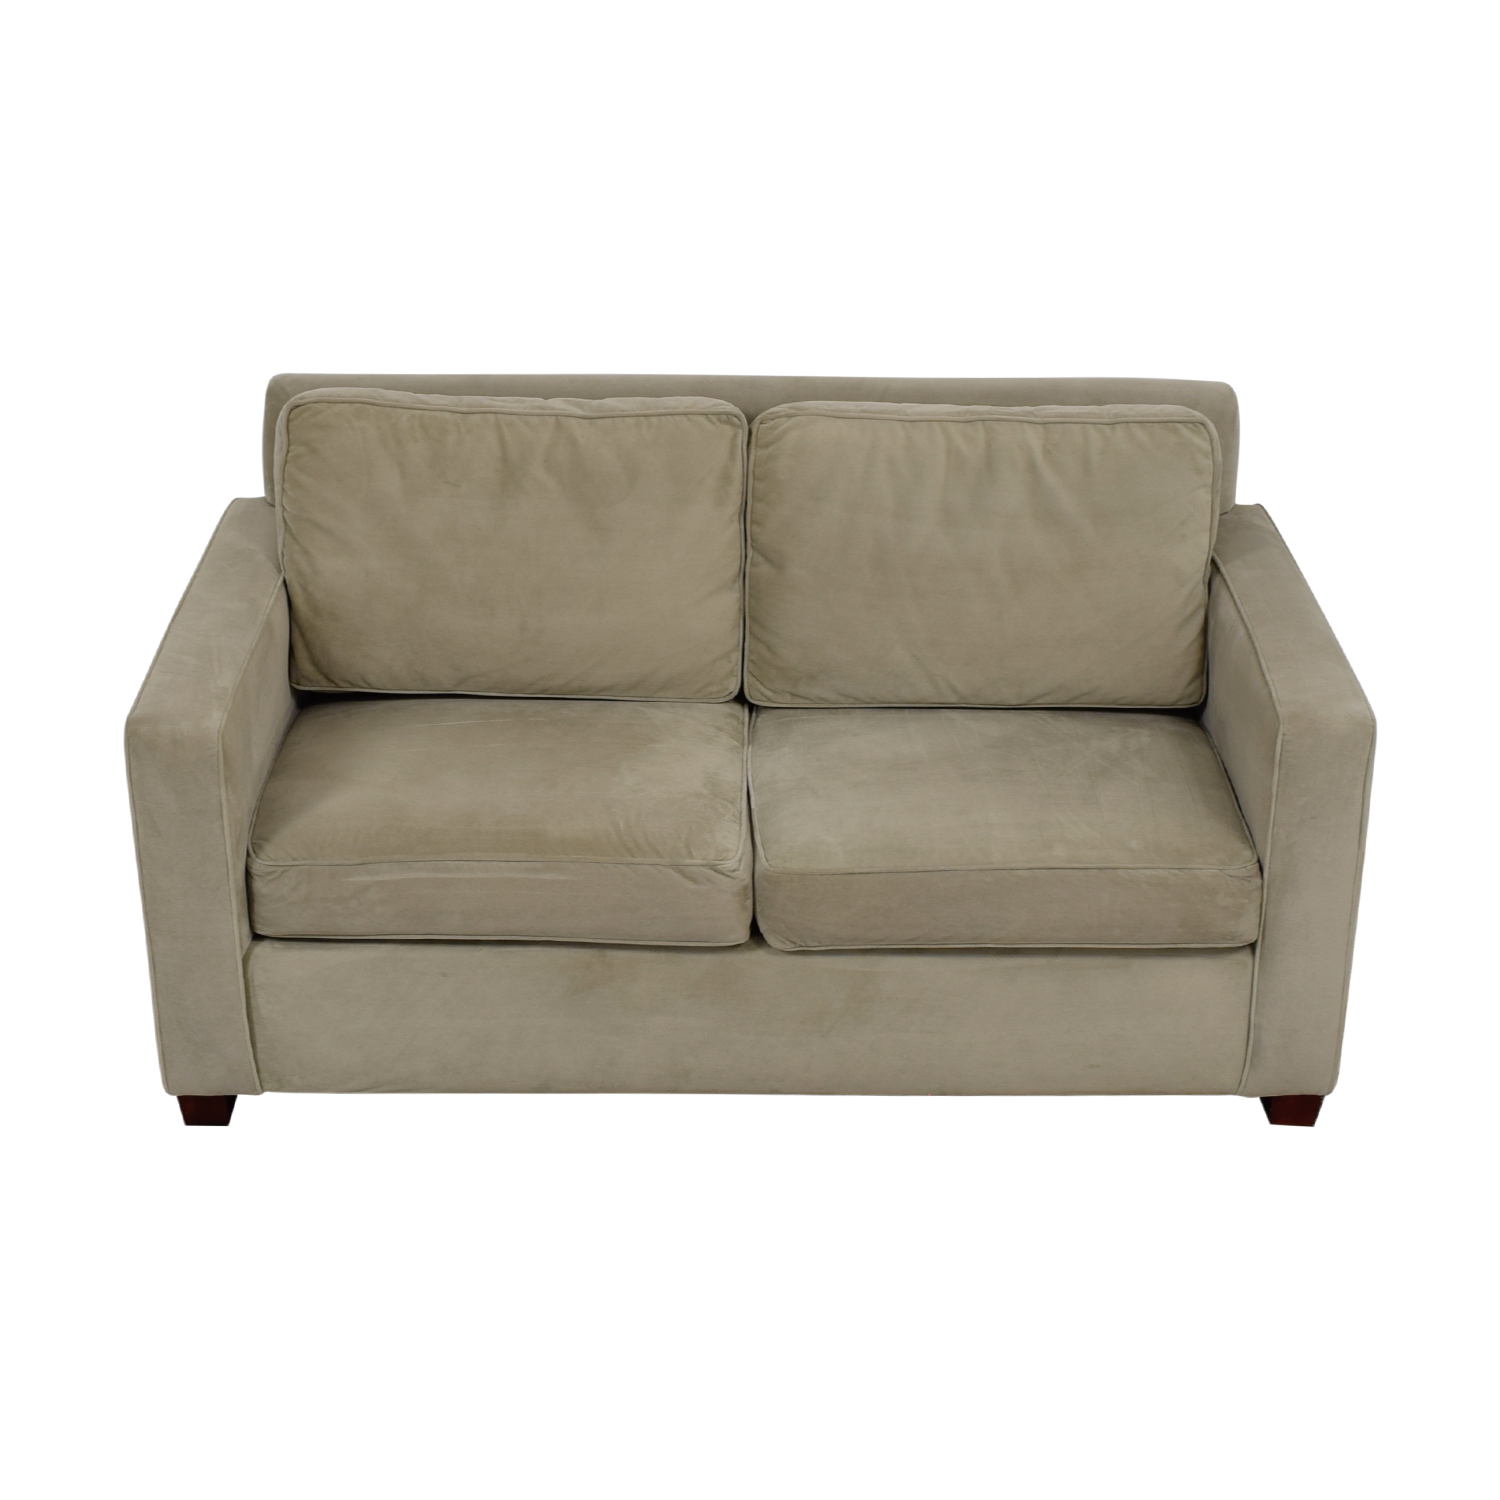 West Elm West Elm Henry Beige Loveseat second hand